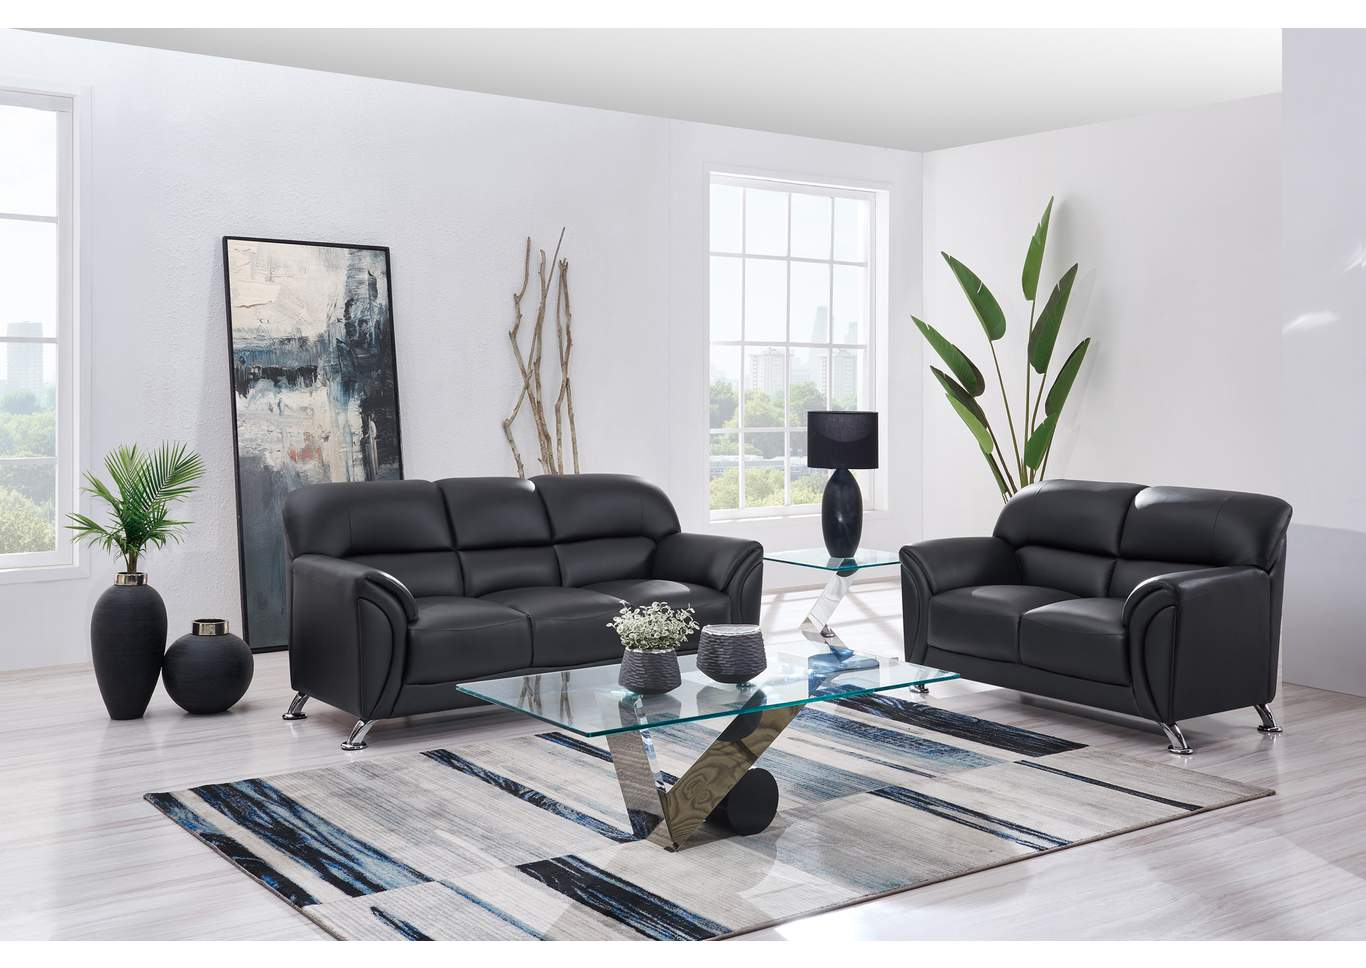 Marvelous Affordable Furniture Carpet Chicago Il Black Sofa Ocoug Best Dining Table And Chair Ideas Images Ocougorg